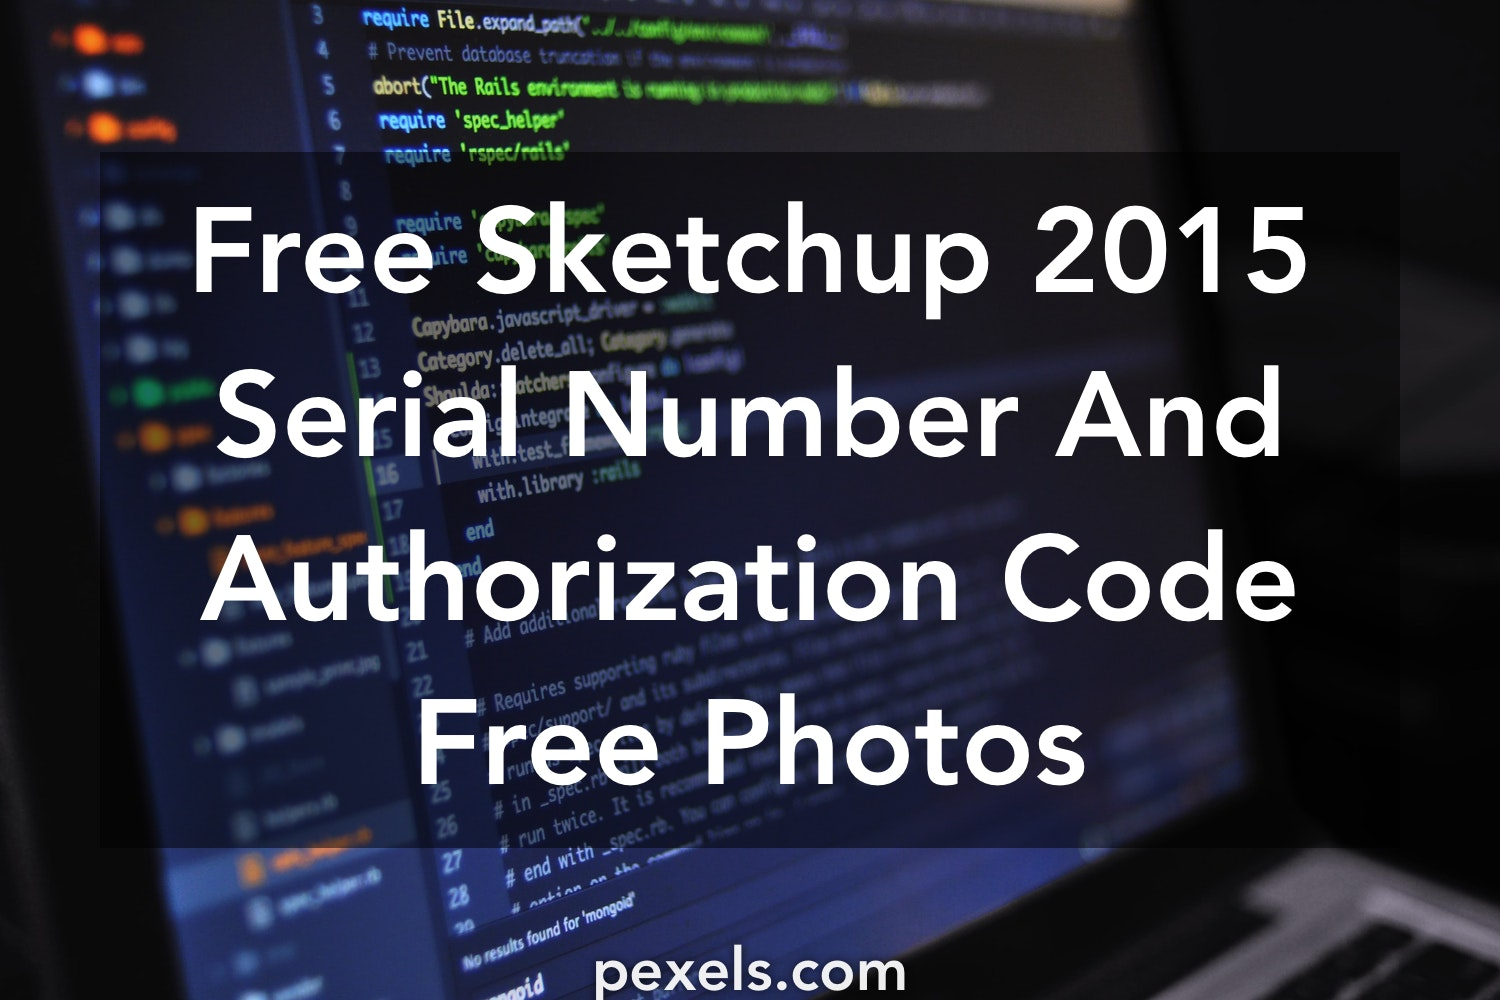 500+ Great Sketchup 2015 Serial Number And Authorization